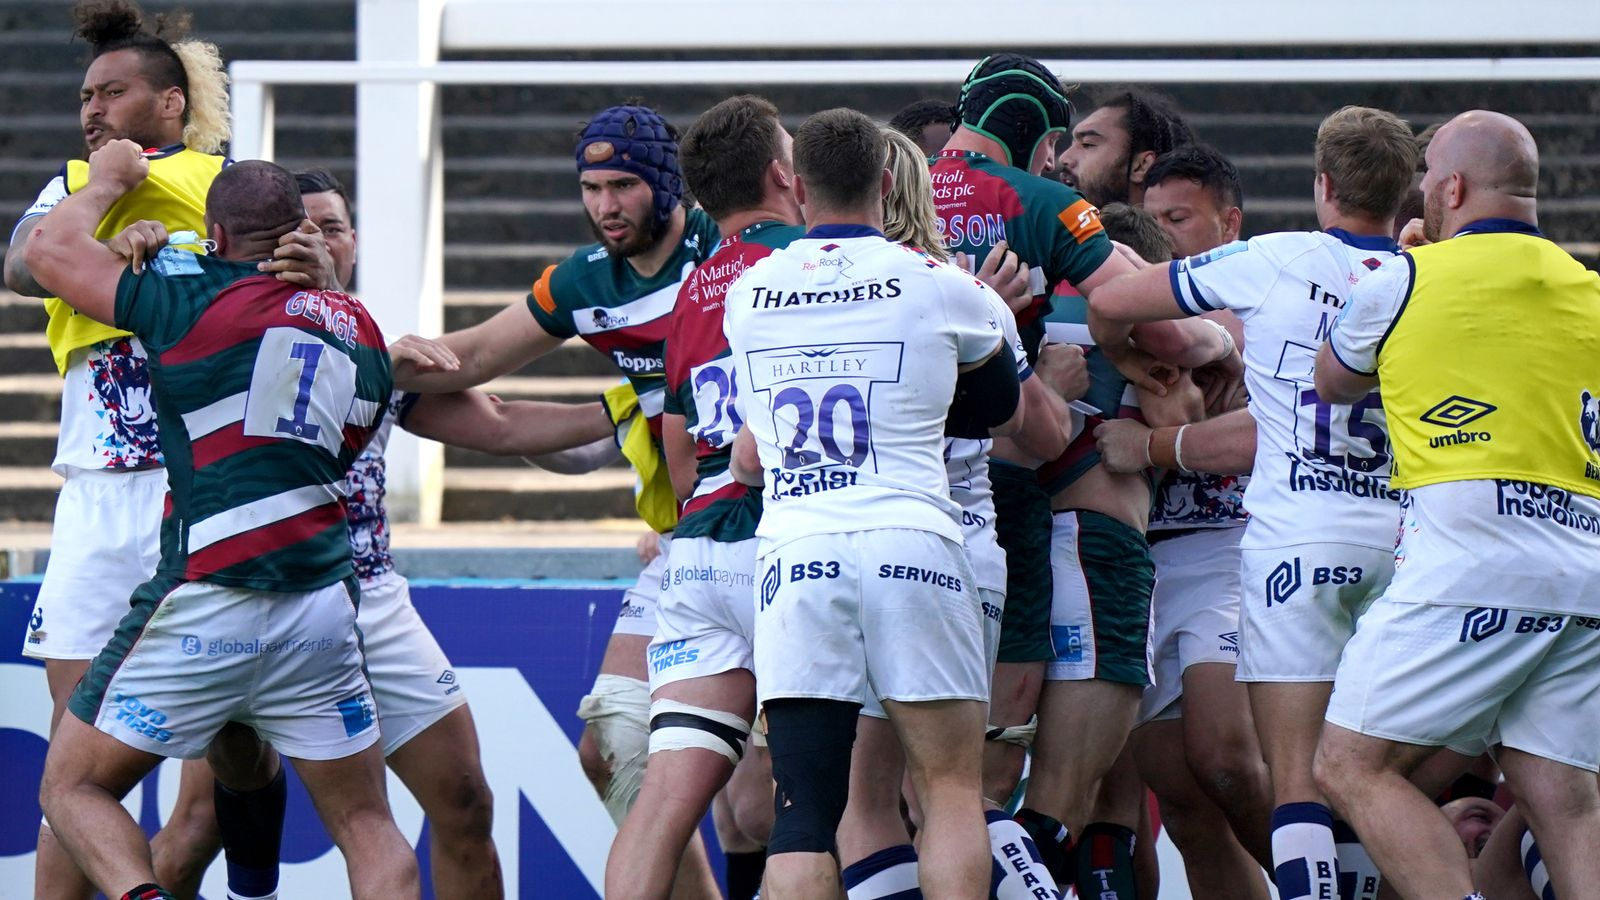 Gallagher Premiership: Late chaos as Bristol Bears beat Leicester Tigers while Tom Willis wins it for Wasps